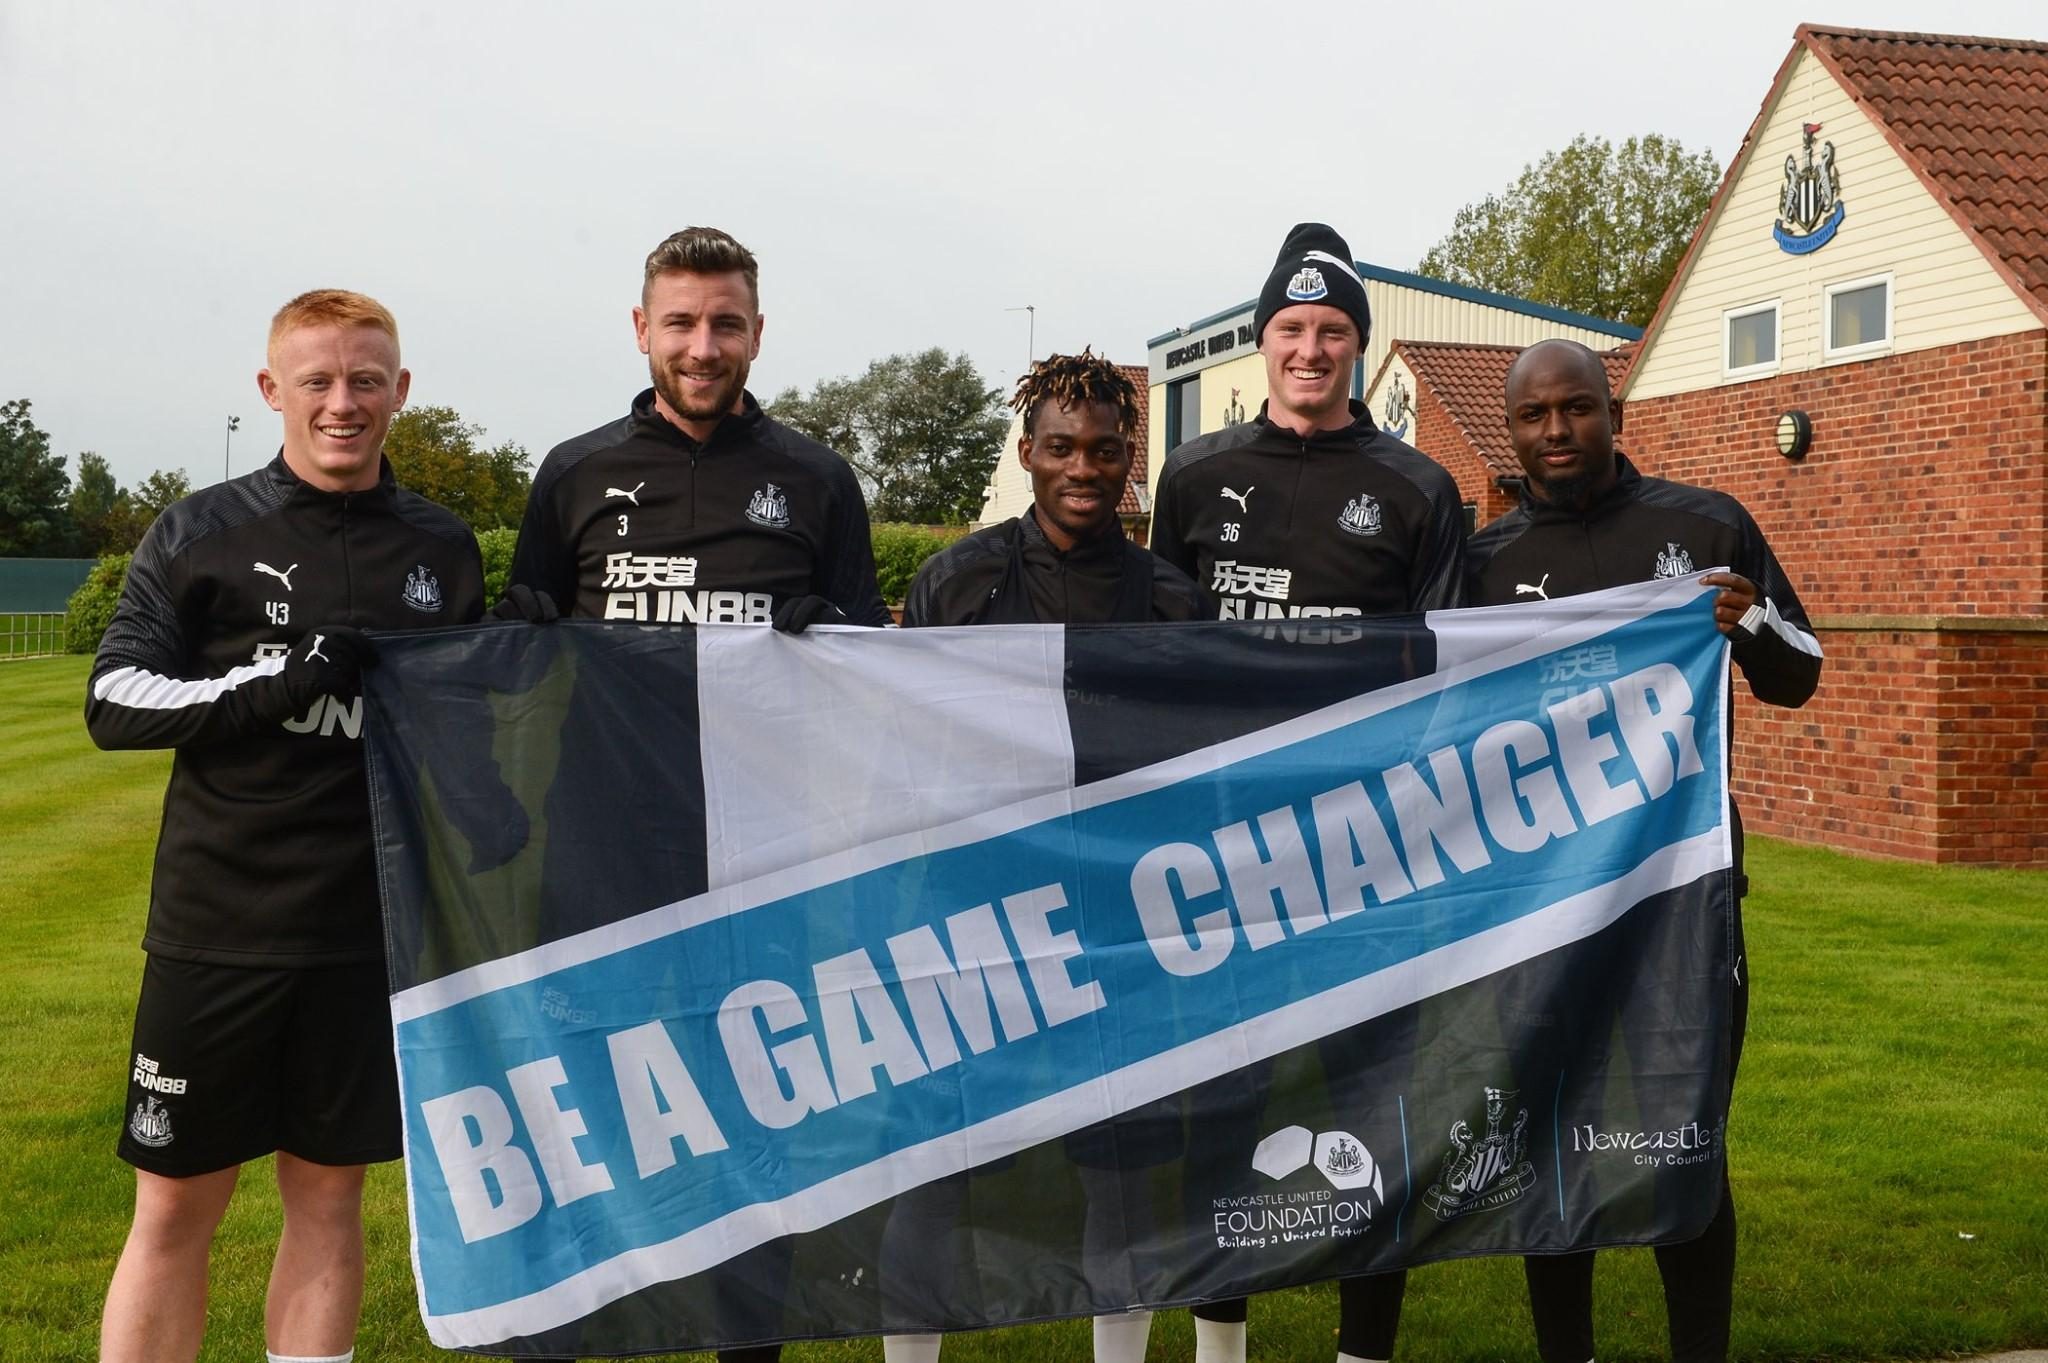 Players from Newcastle United supporting the Be A Game Changer campaign